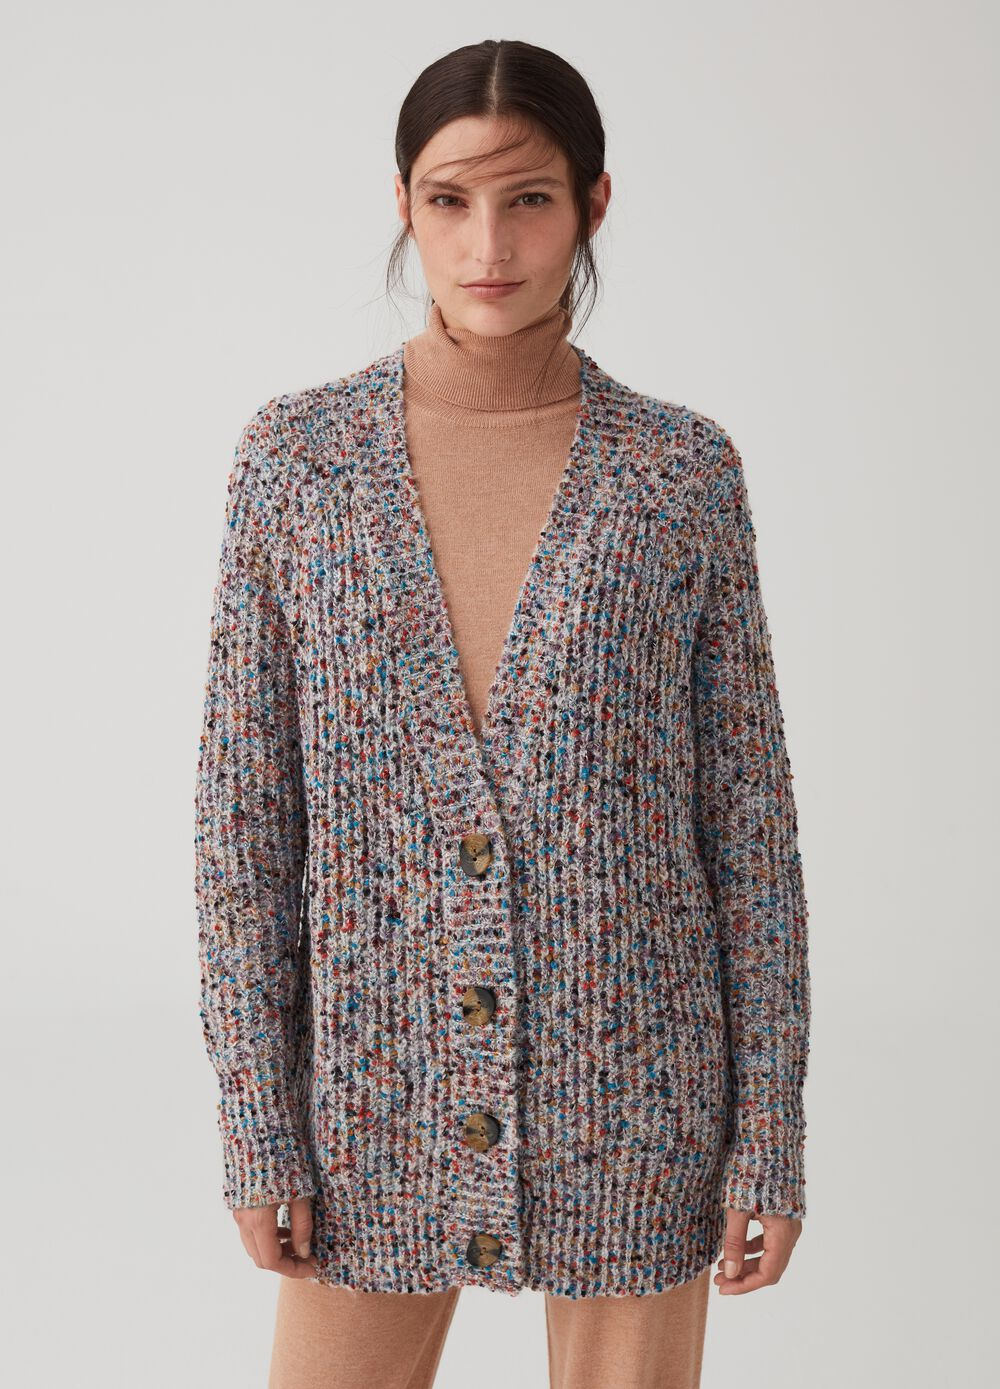 Multicoloured knitted cardigan with buttons